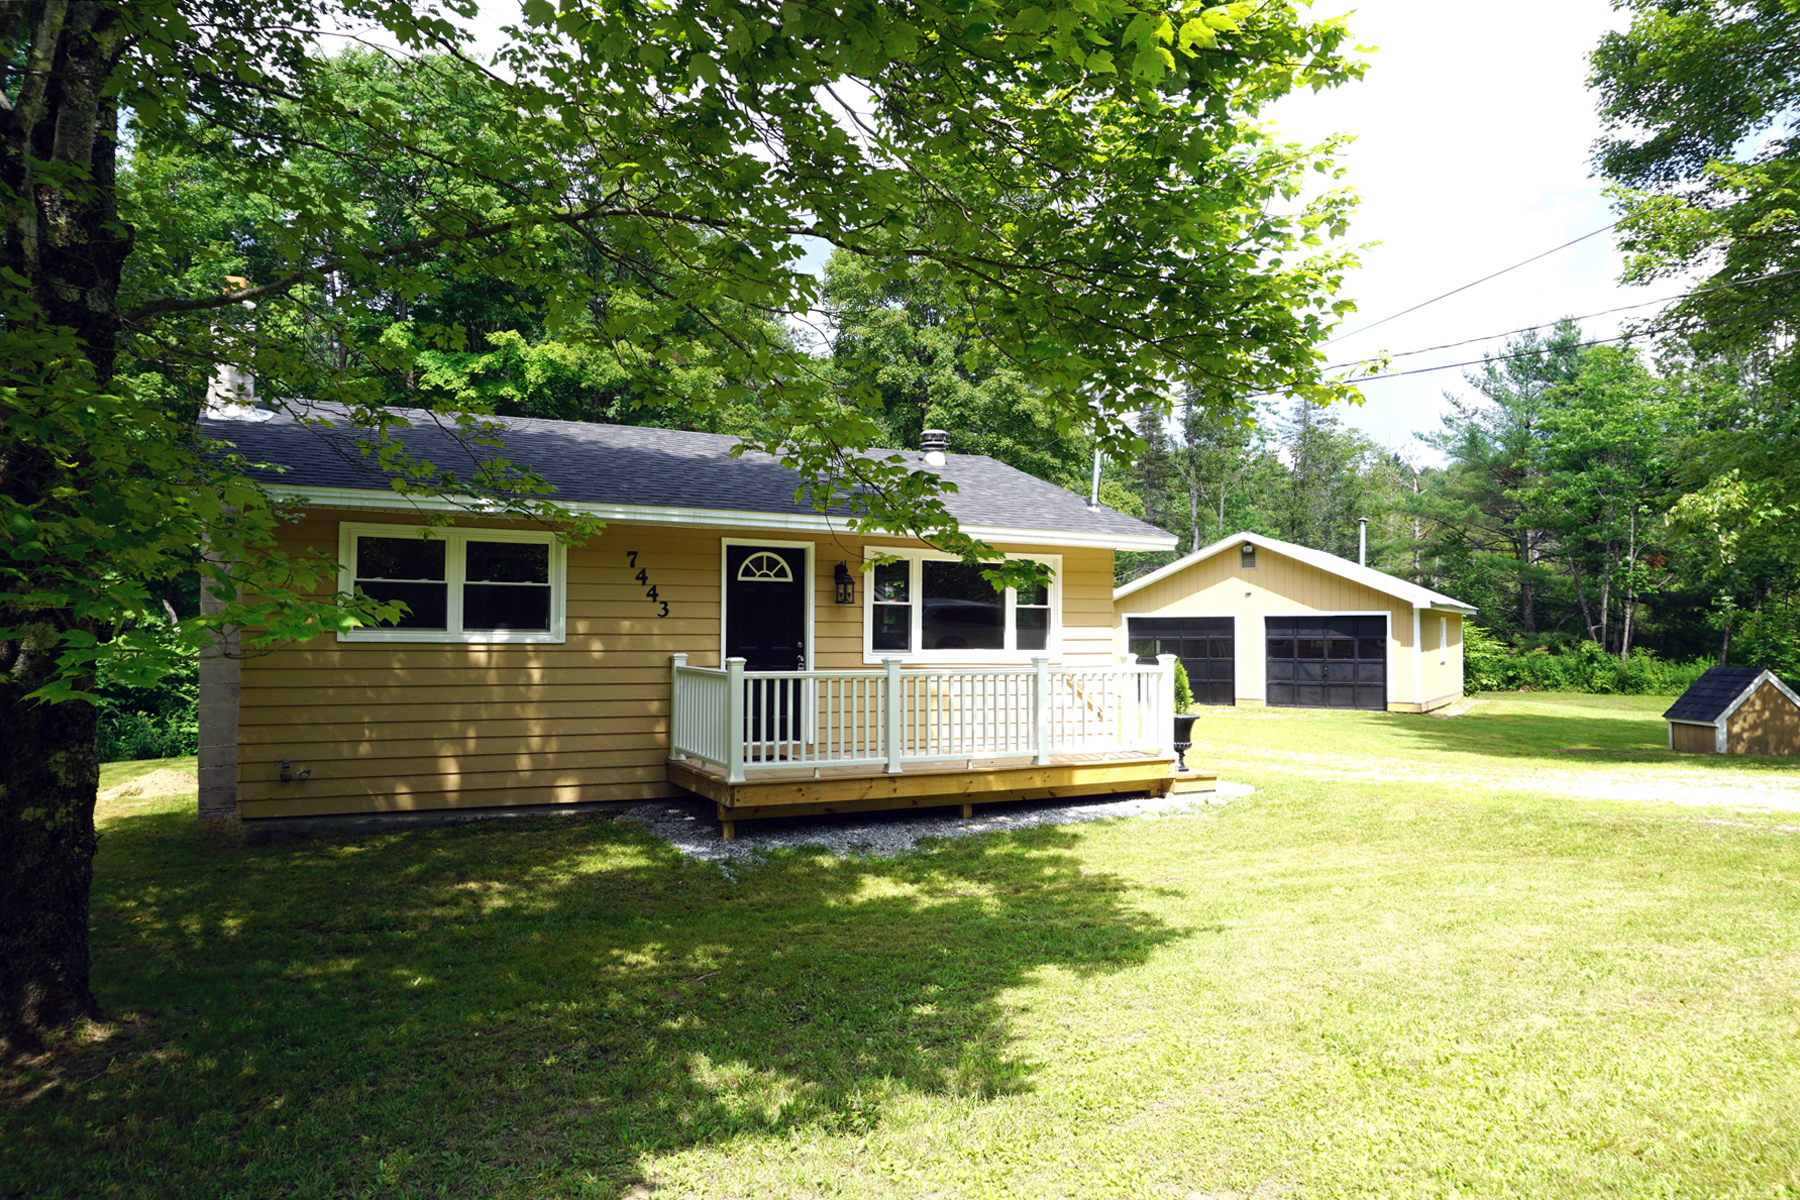 Single Family Homes for Sale at SHREWSBURY 7443 Cold River Rd Shrewsbury, Vermont 05738 United States